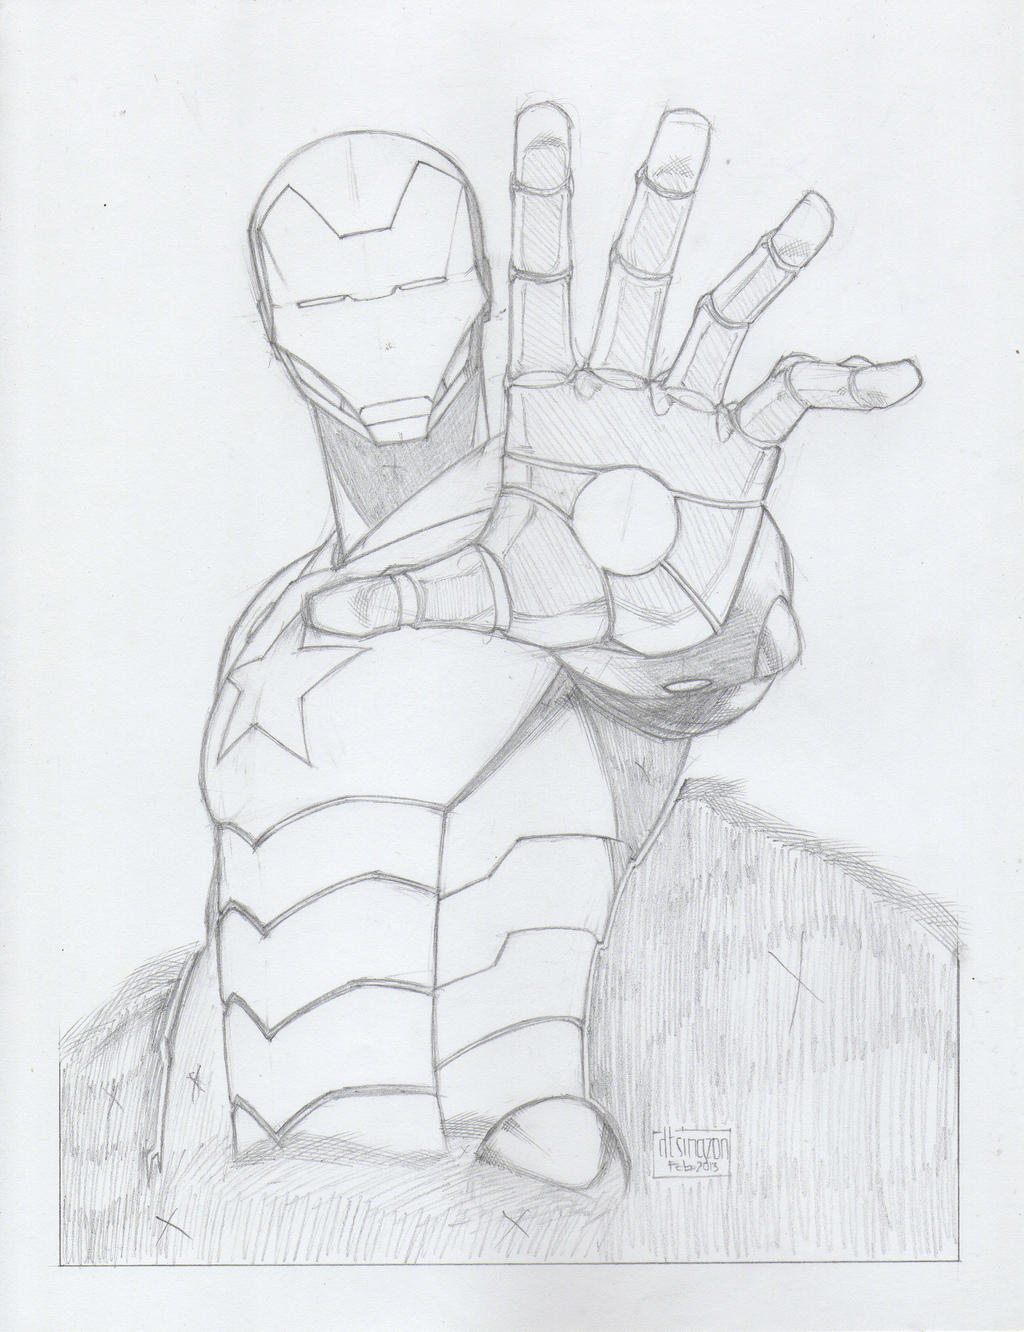 Iron Patriot Drawing Iron patriot [pencils] by